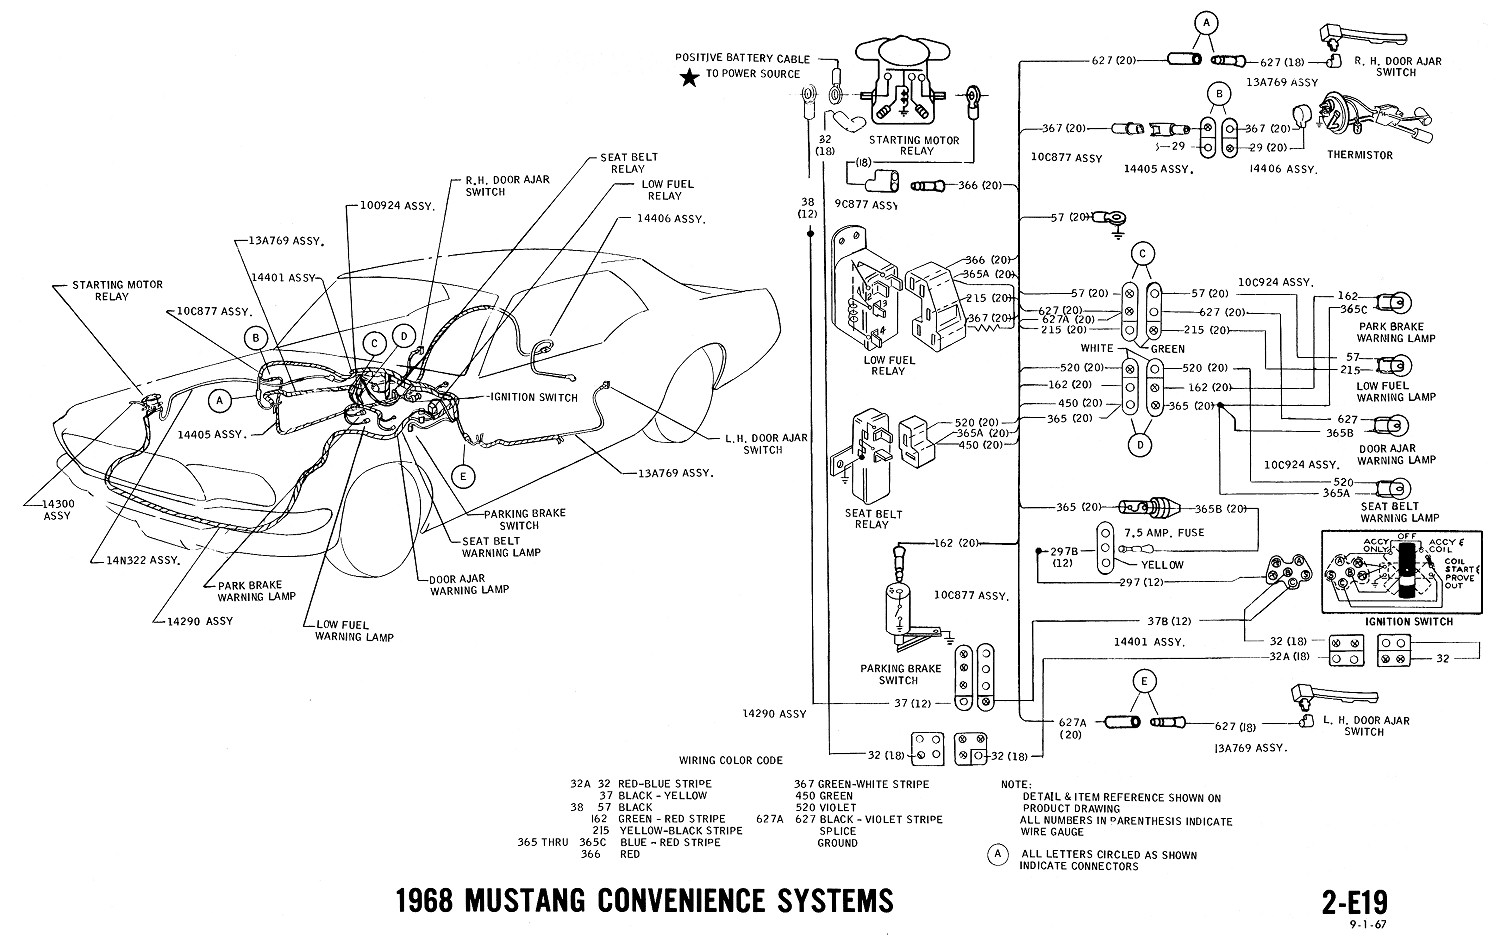 E19 1968 mustang wiring diagrams evolving software 1969 mustang color wiring diagram at panicattacktreatment.co